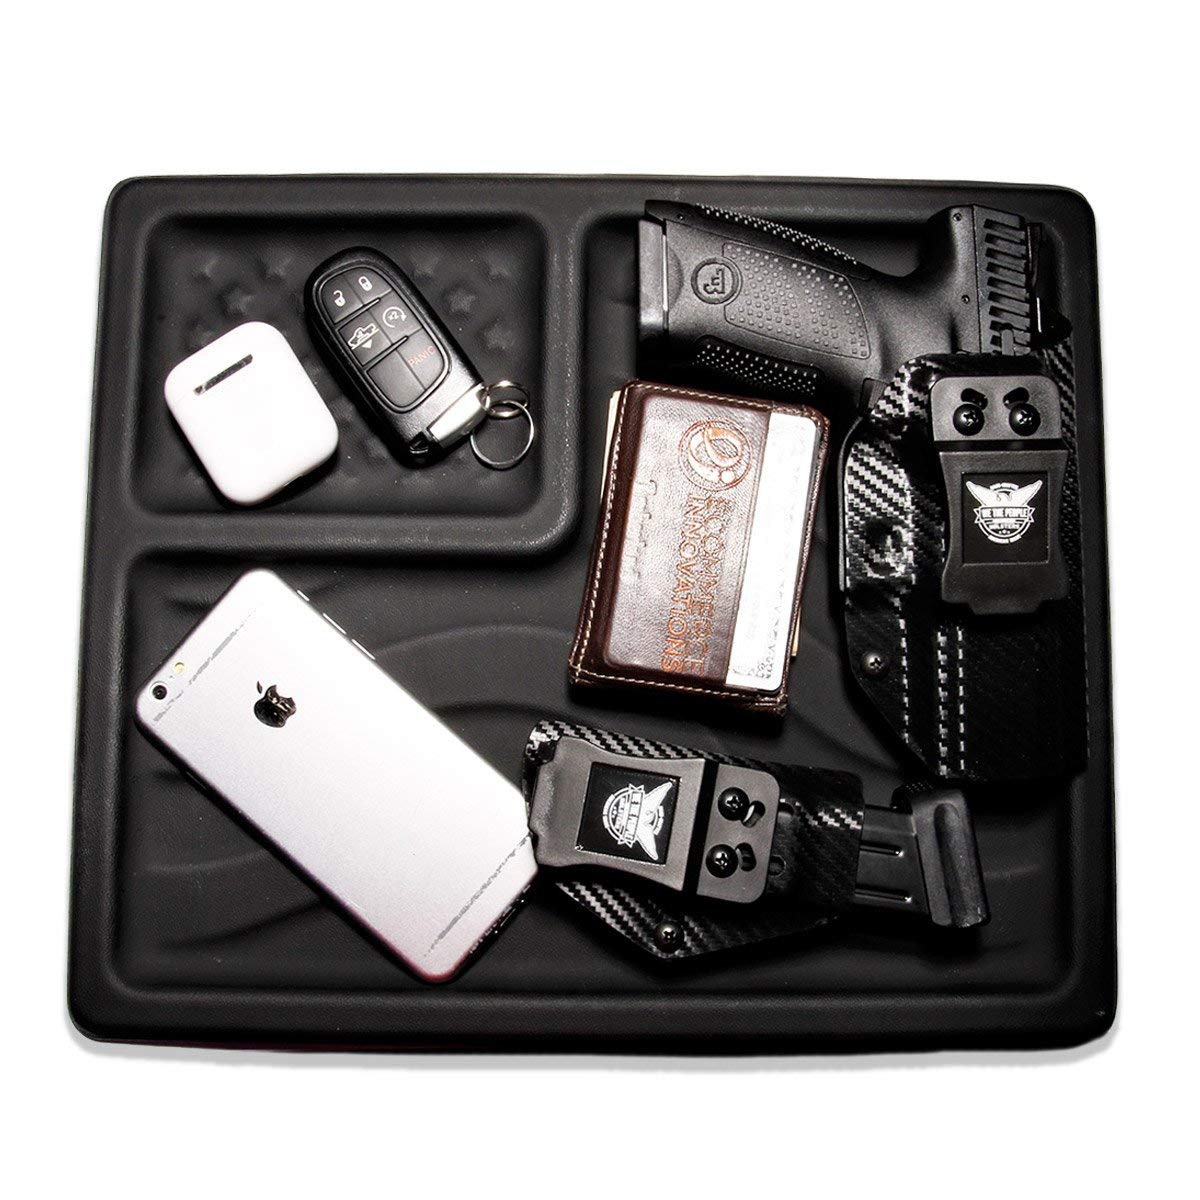 We The People Holsters - American Flag EDC Kydex Dump Tray - Valet Tray for Men - EDC Organizer and Catch-All for Everyday Carry, Keys, Change, Phone (Black) by We The People Holsters (Image #2)